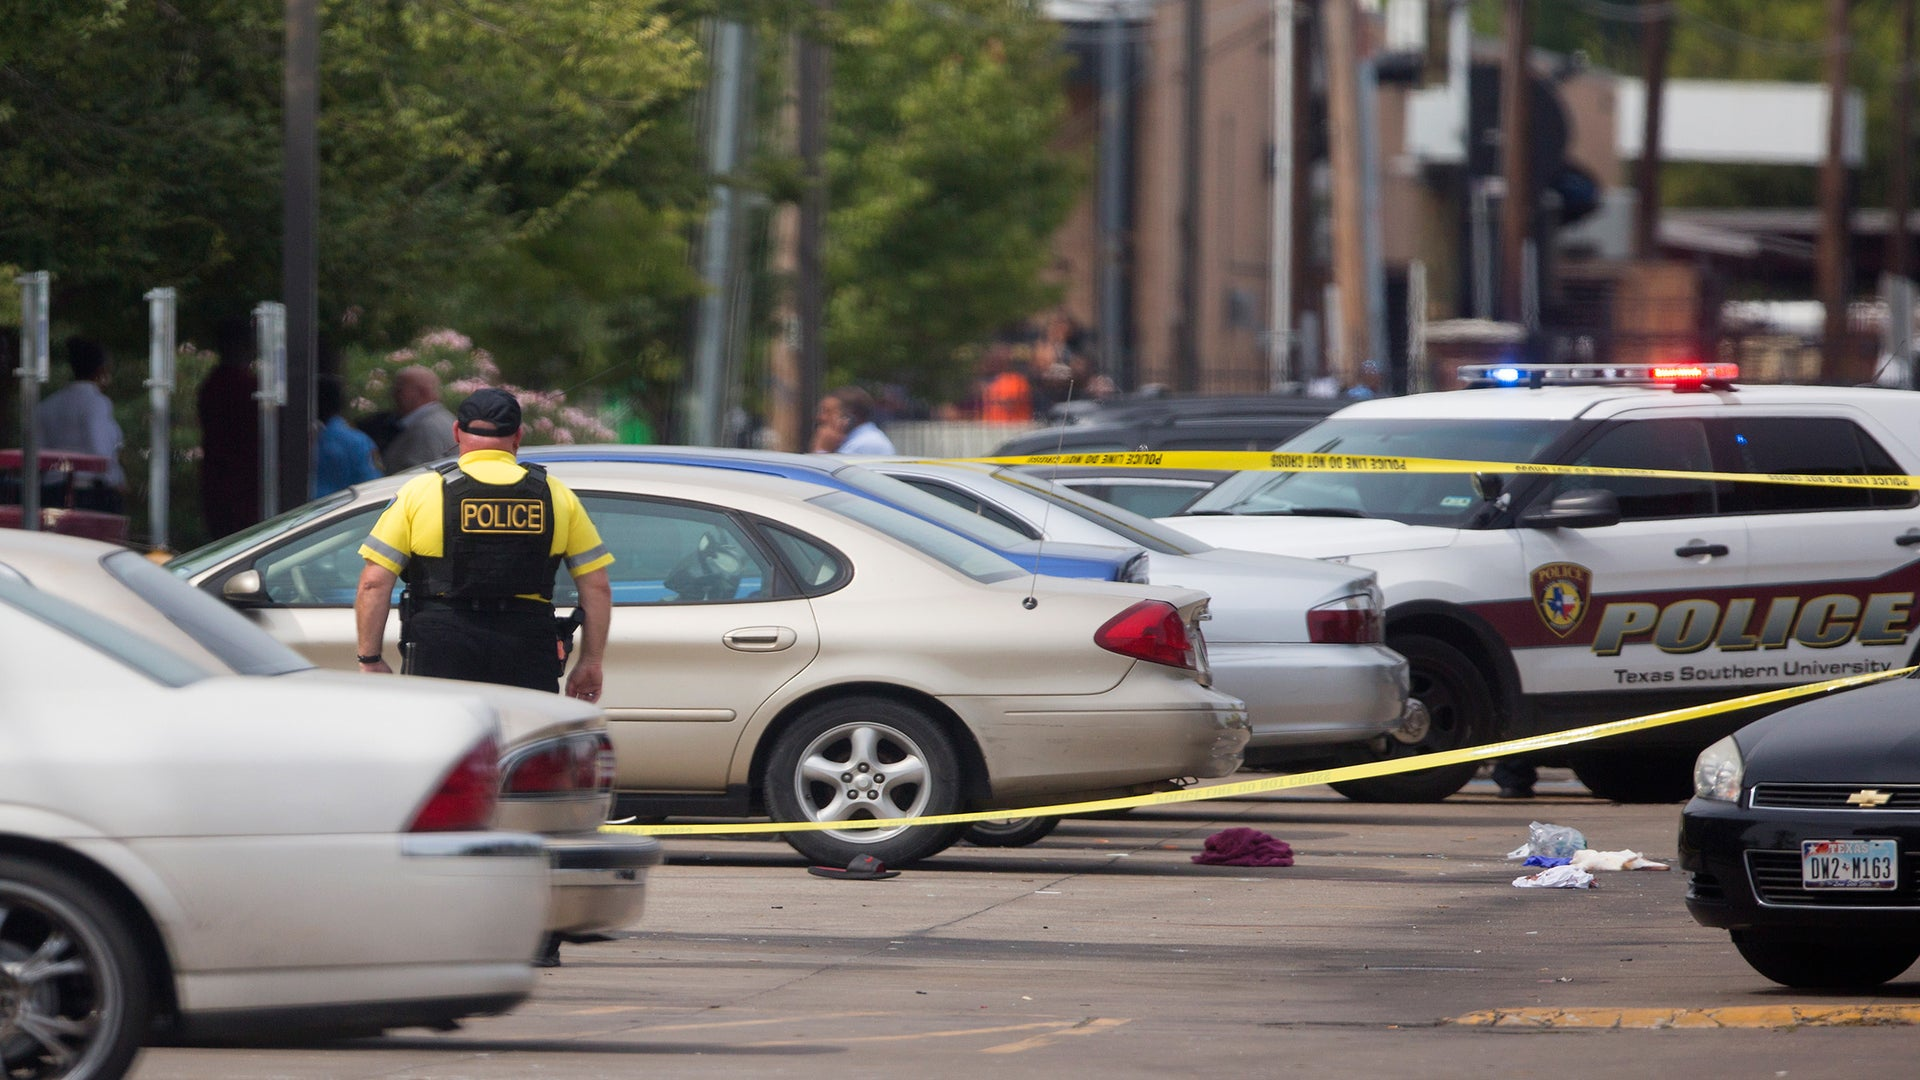 Separate Shootings at Texas Southern University, Northern Arizona University Leave 2 Dead